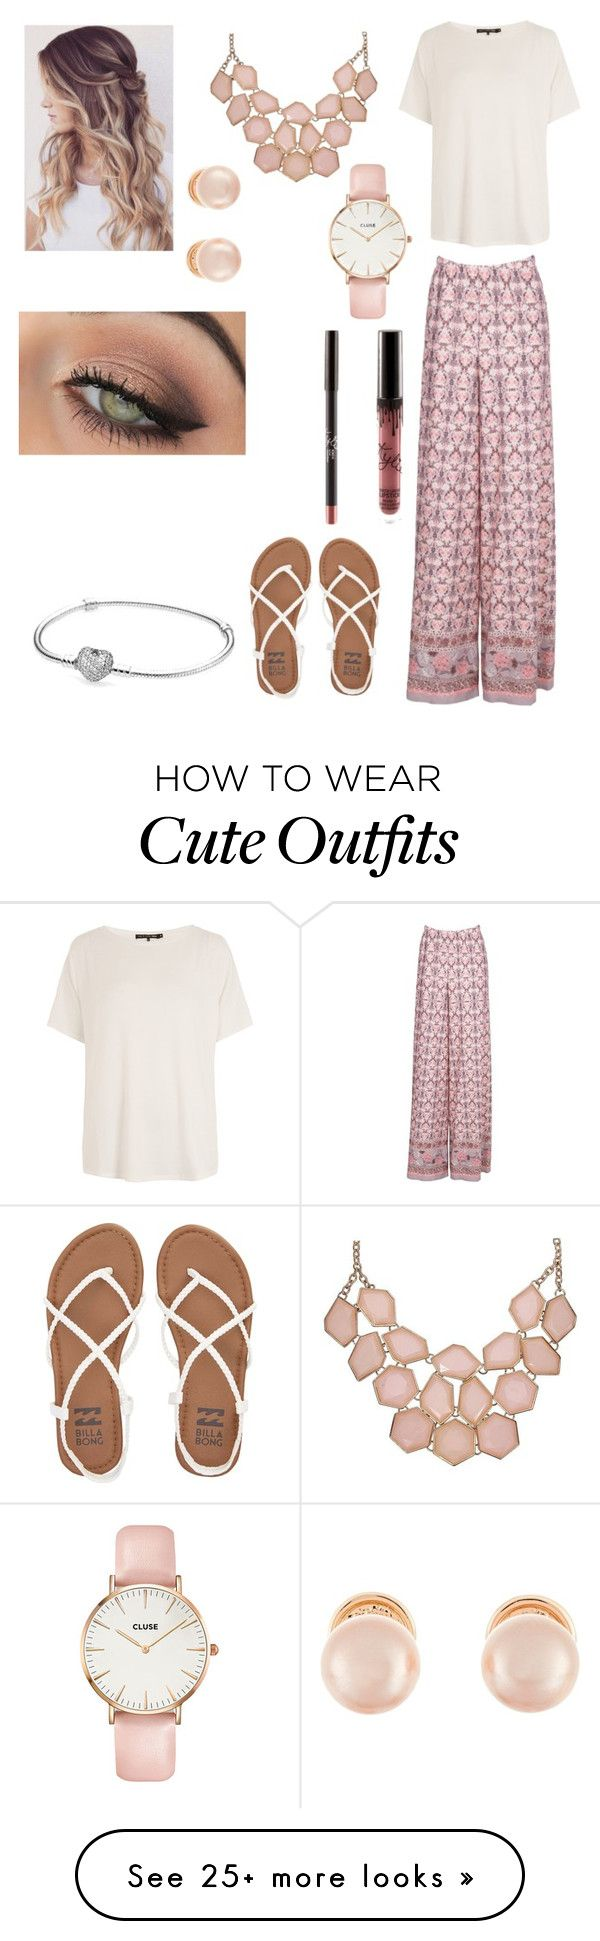 """Cute summer dinner outfit"" by agrava on Polyvore featuring rag & bone/JEAN, Billabong, Kenneth Jay Lane, CLUSE, tarte and Pandora"